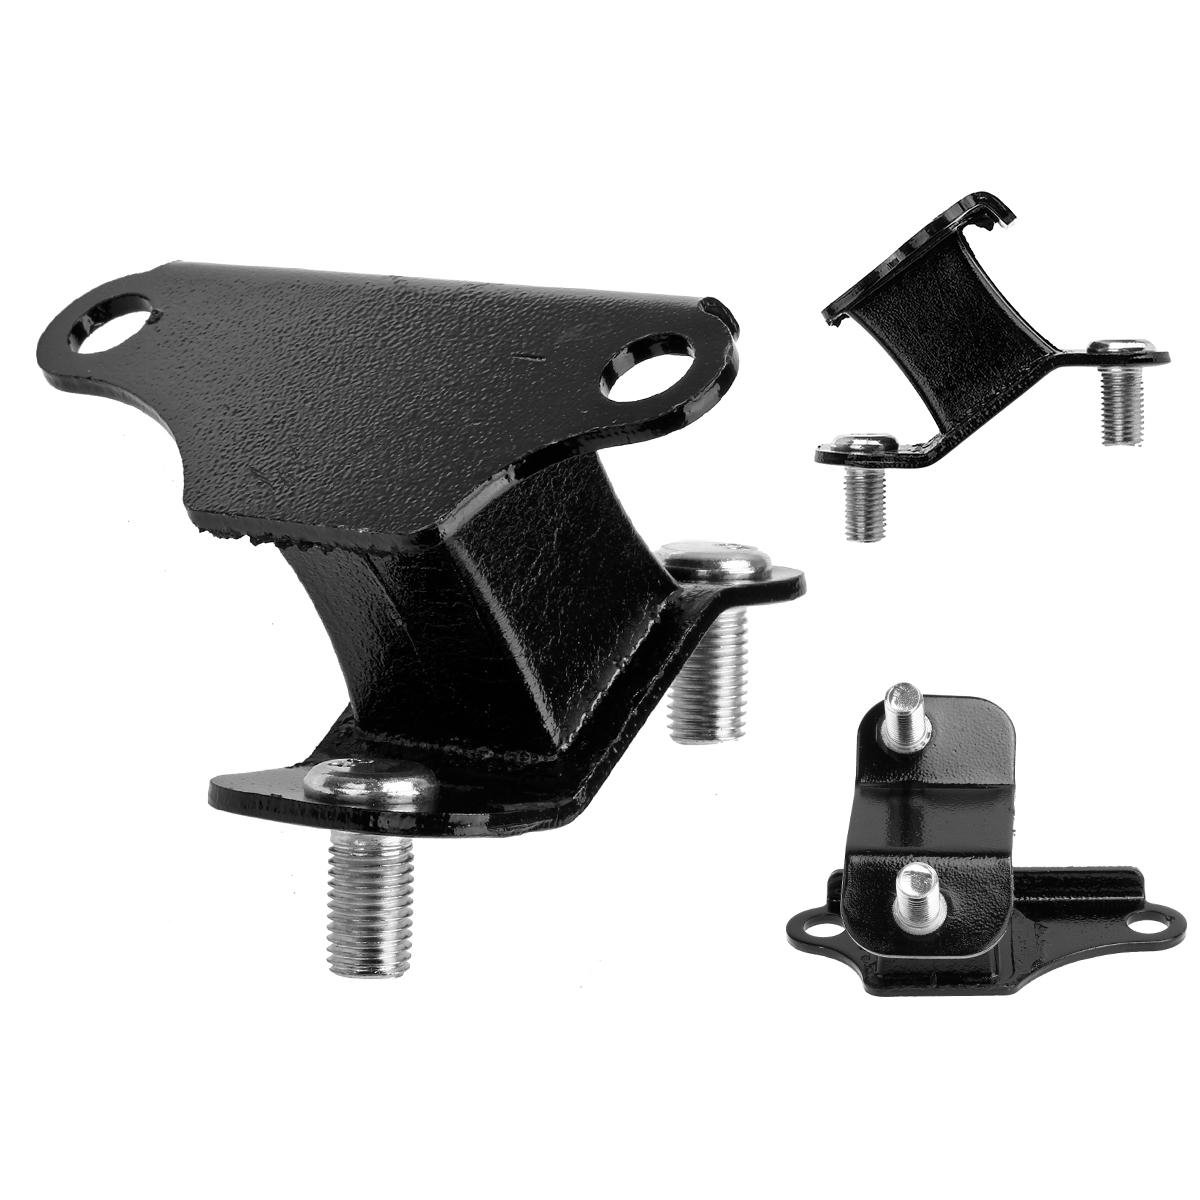 MAXMOUNT Transmission Engine Motor Mounts A6579 For 1999